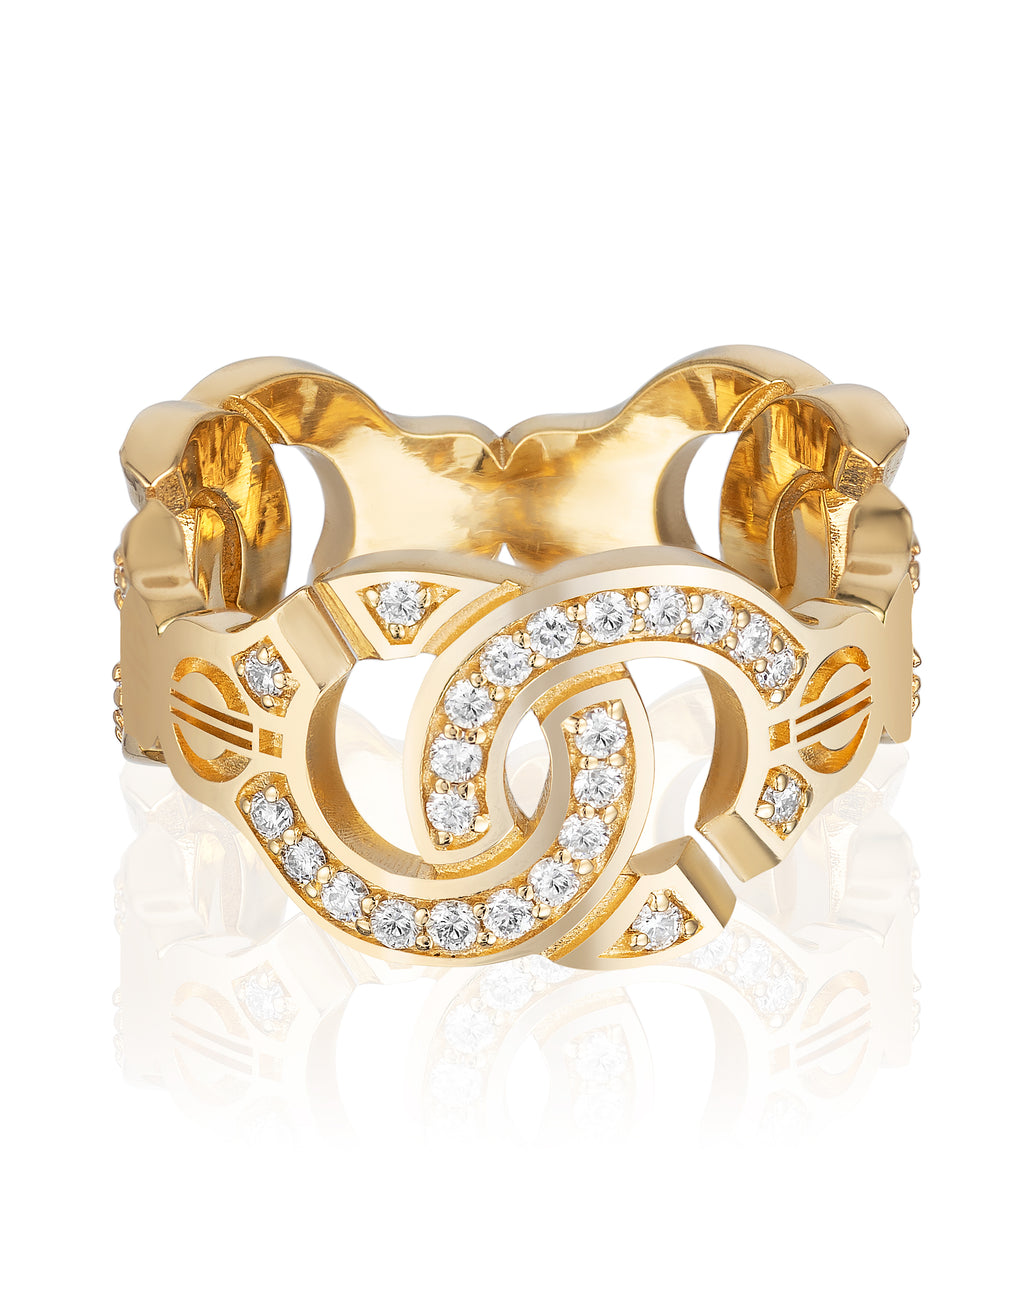 The Aphrodite Ring with Diamonds